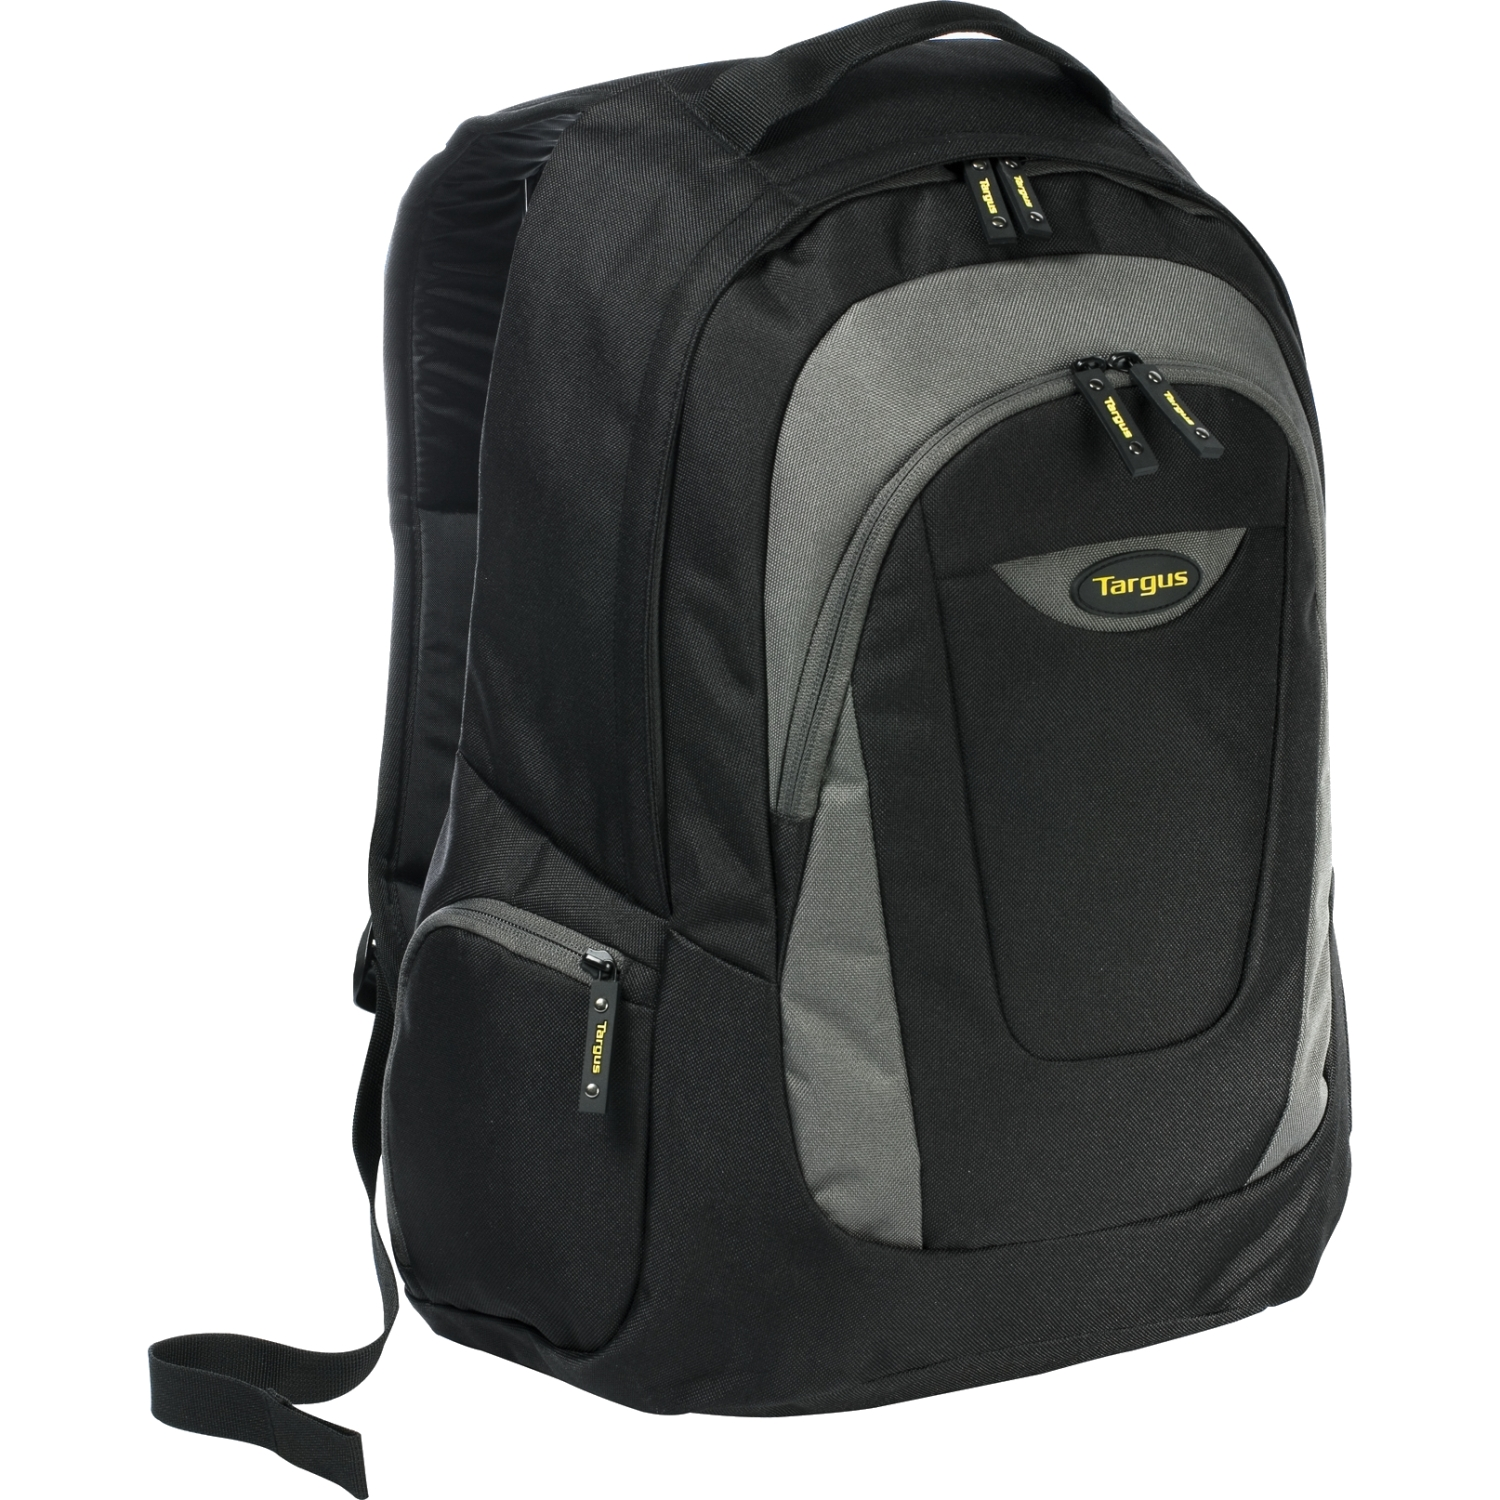 Trek Carrying Case (Backpack) for 16 inch Notebook - Black Yellow White Accent - Polyester - Shoulder Strap